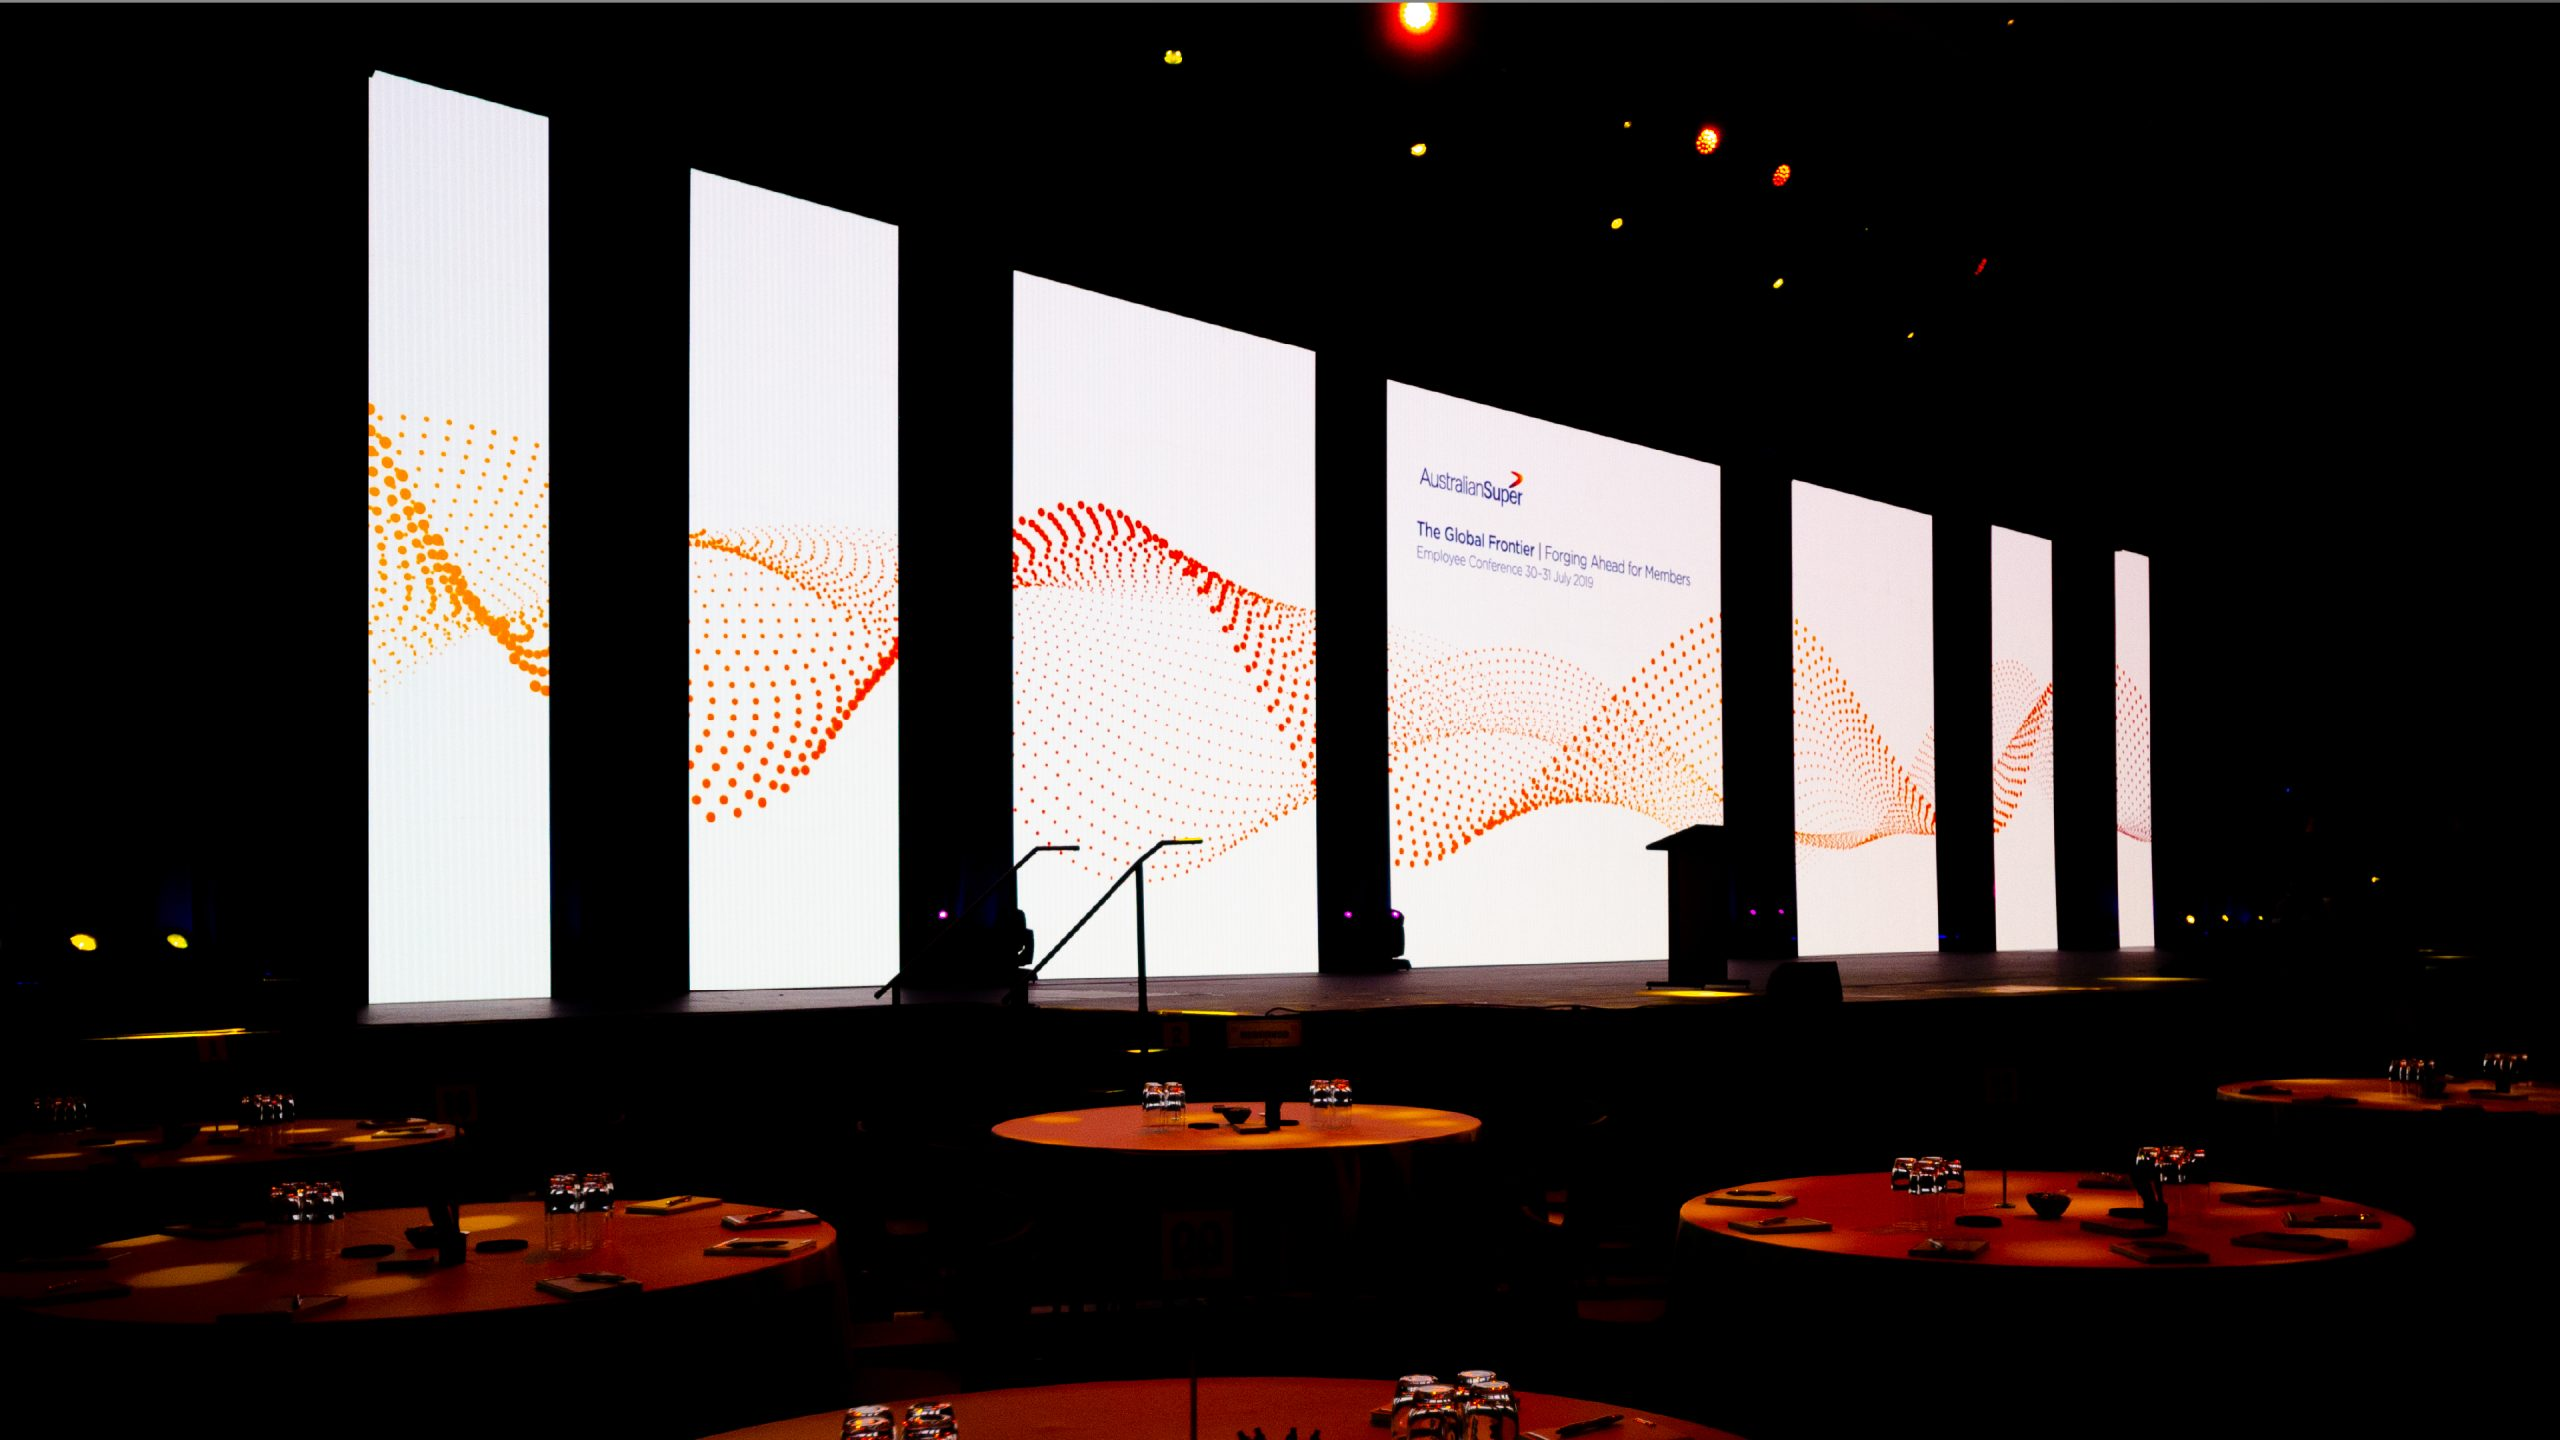 An array of large LED screens on a stage feature the AustralianSuper – Good to Great for Members branding.